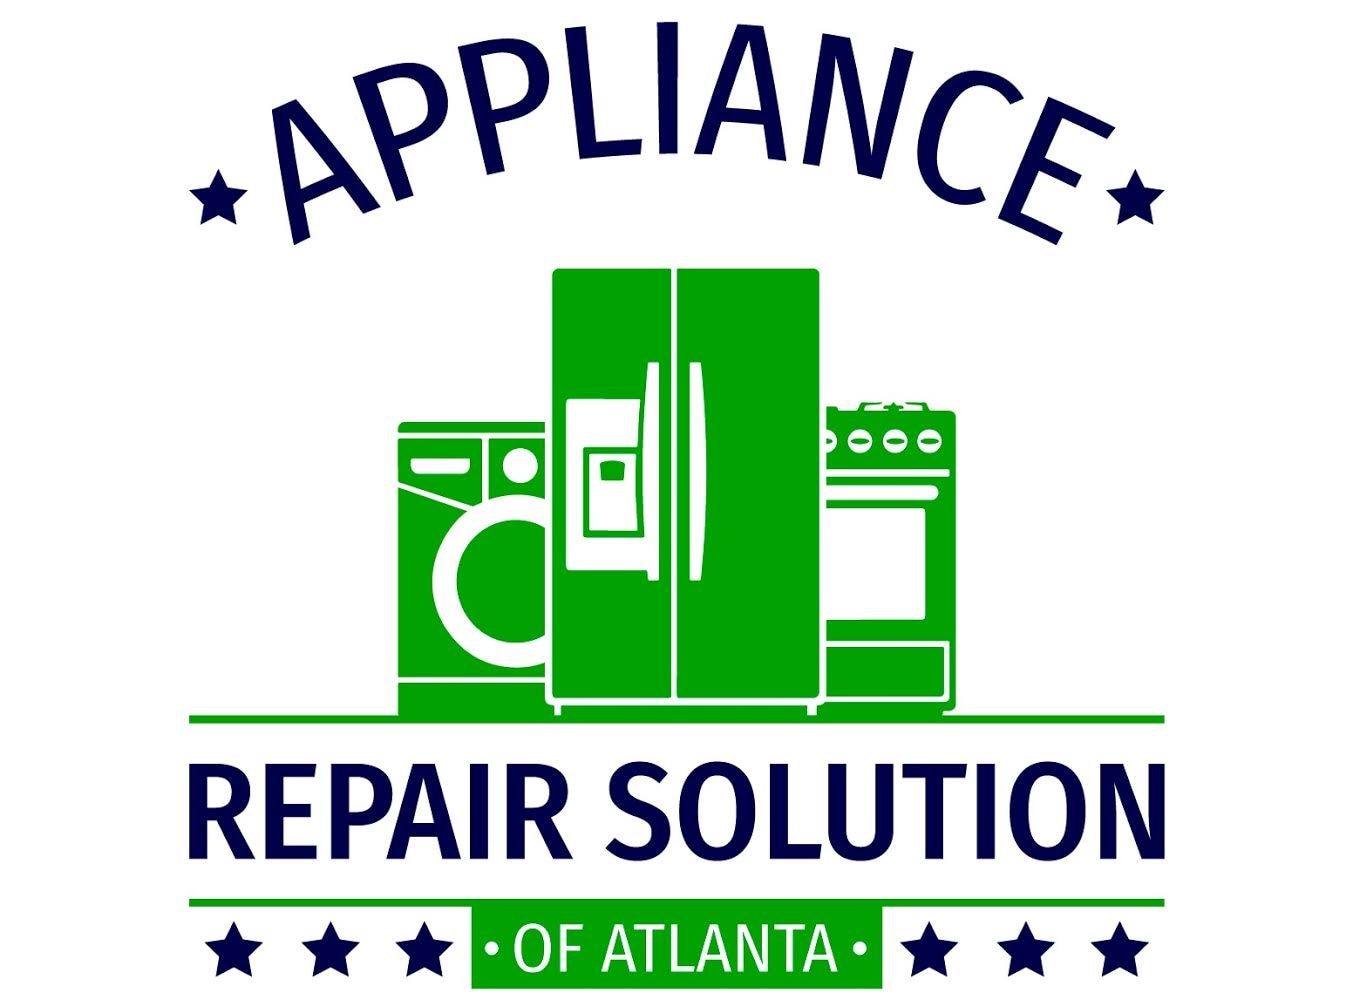 Appliance Repair Solution of Atlanta, LLC